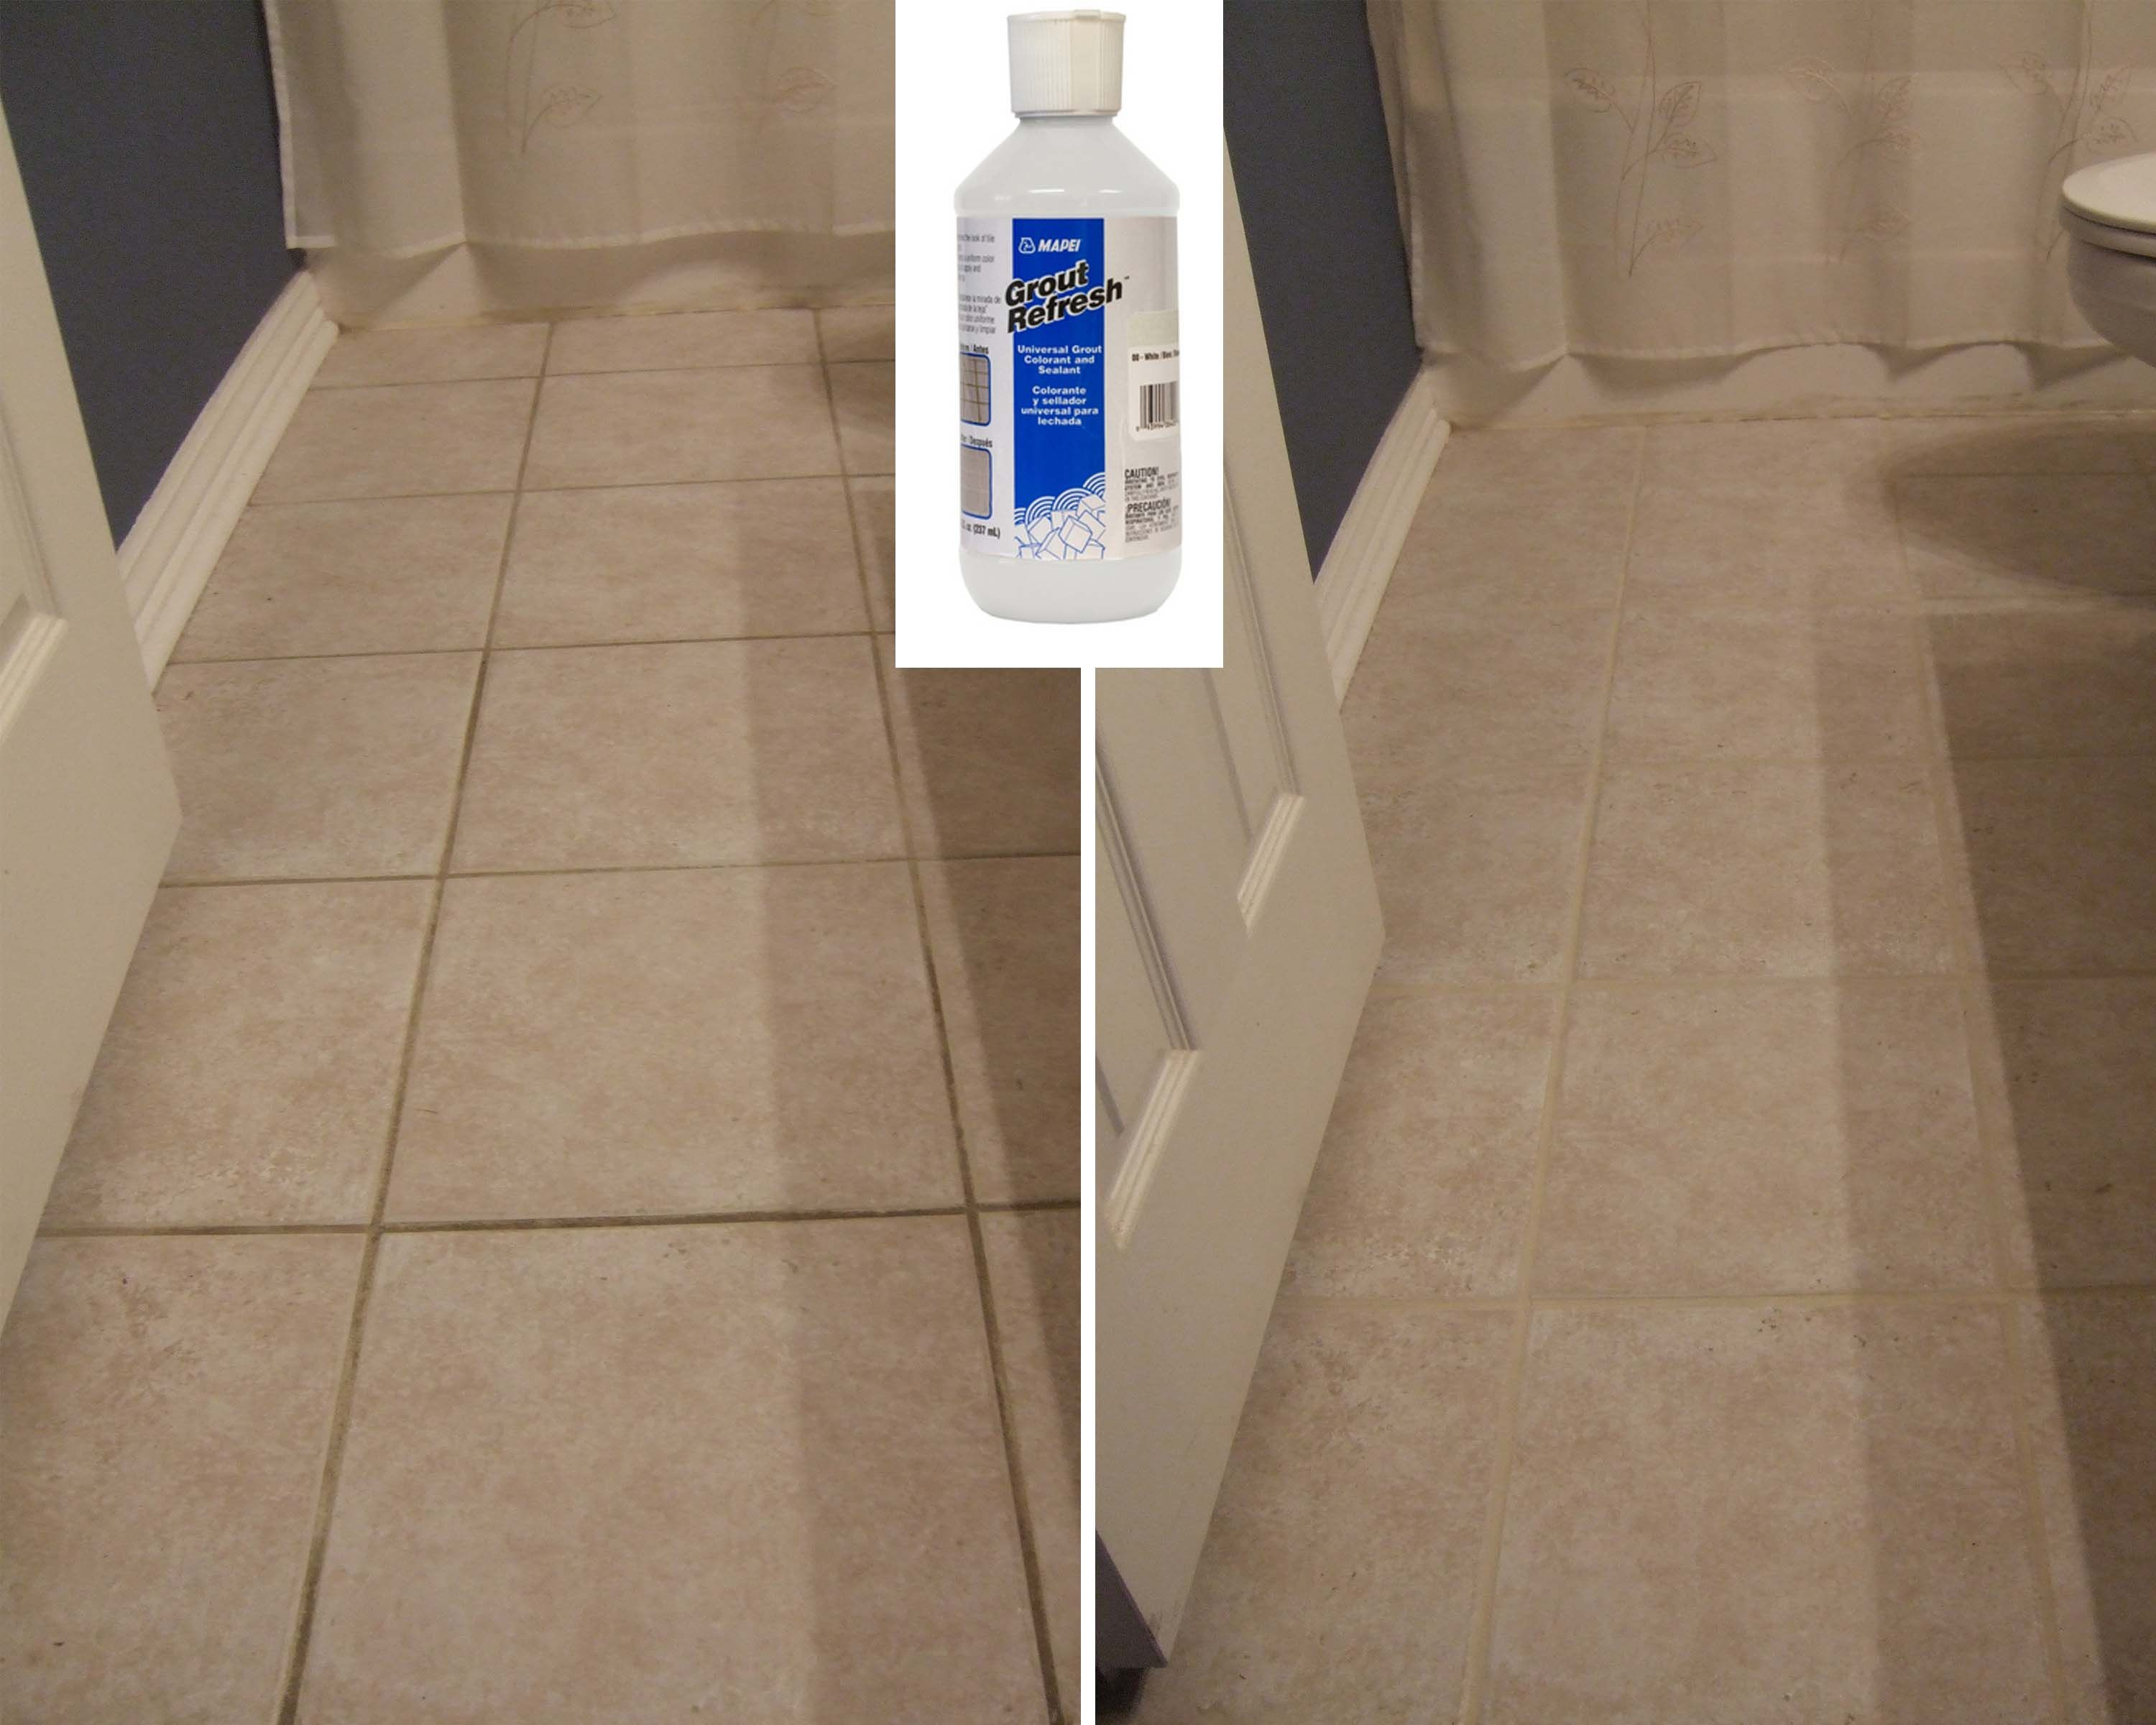 How To Clean Grout On Tile Floors With Hydrogen Peroxide